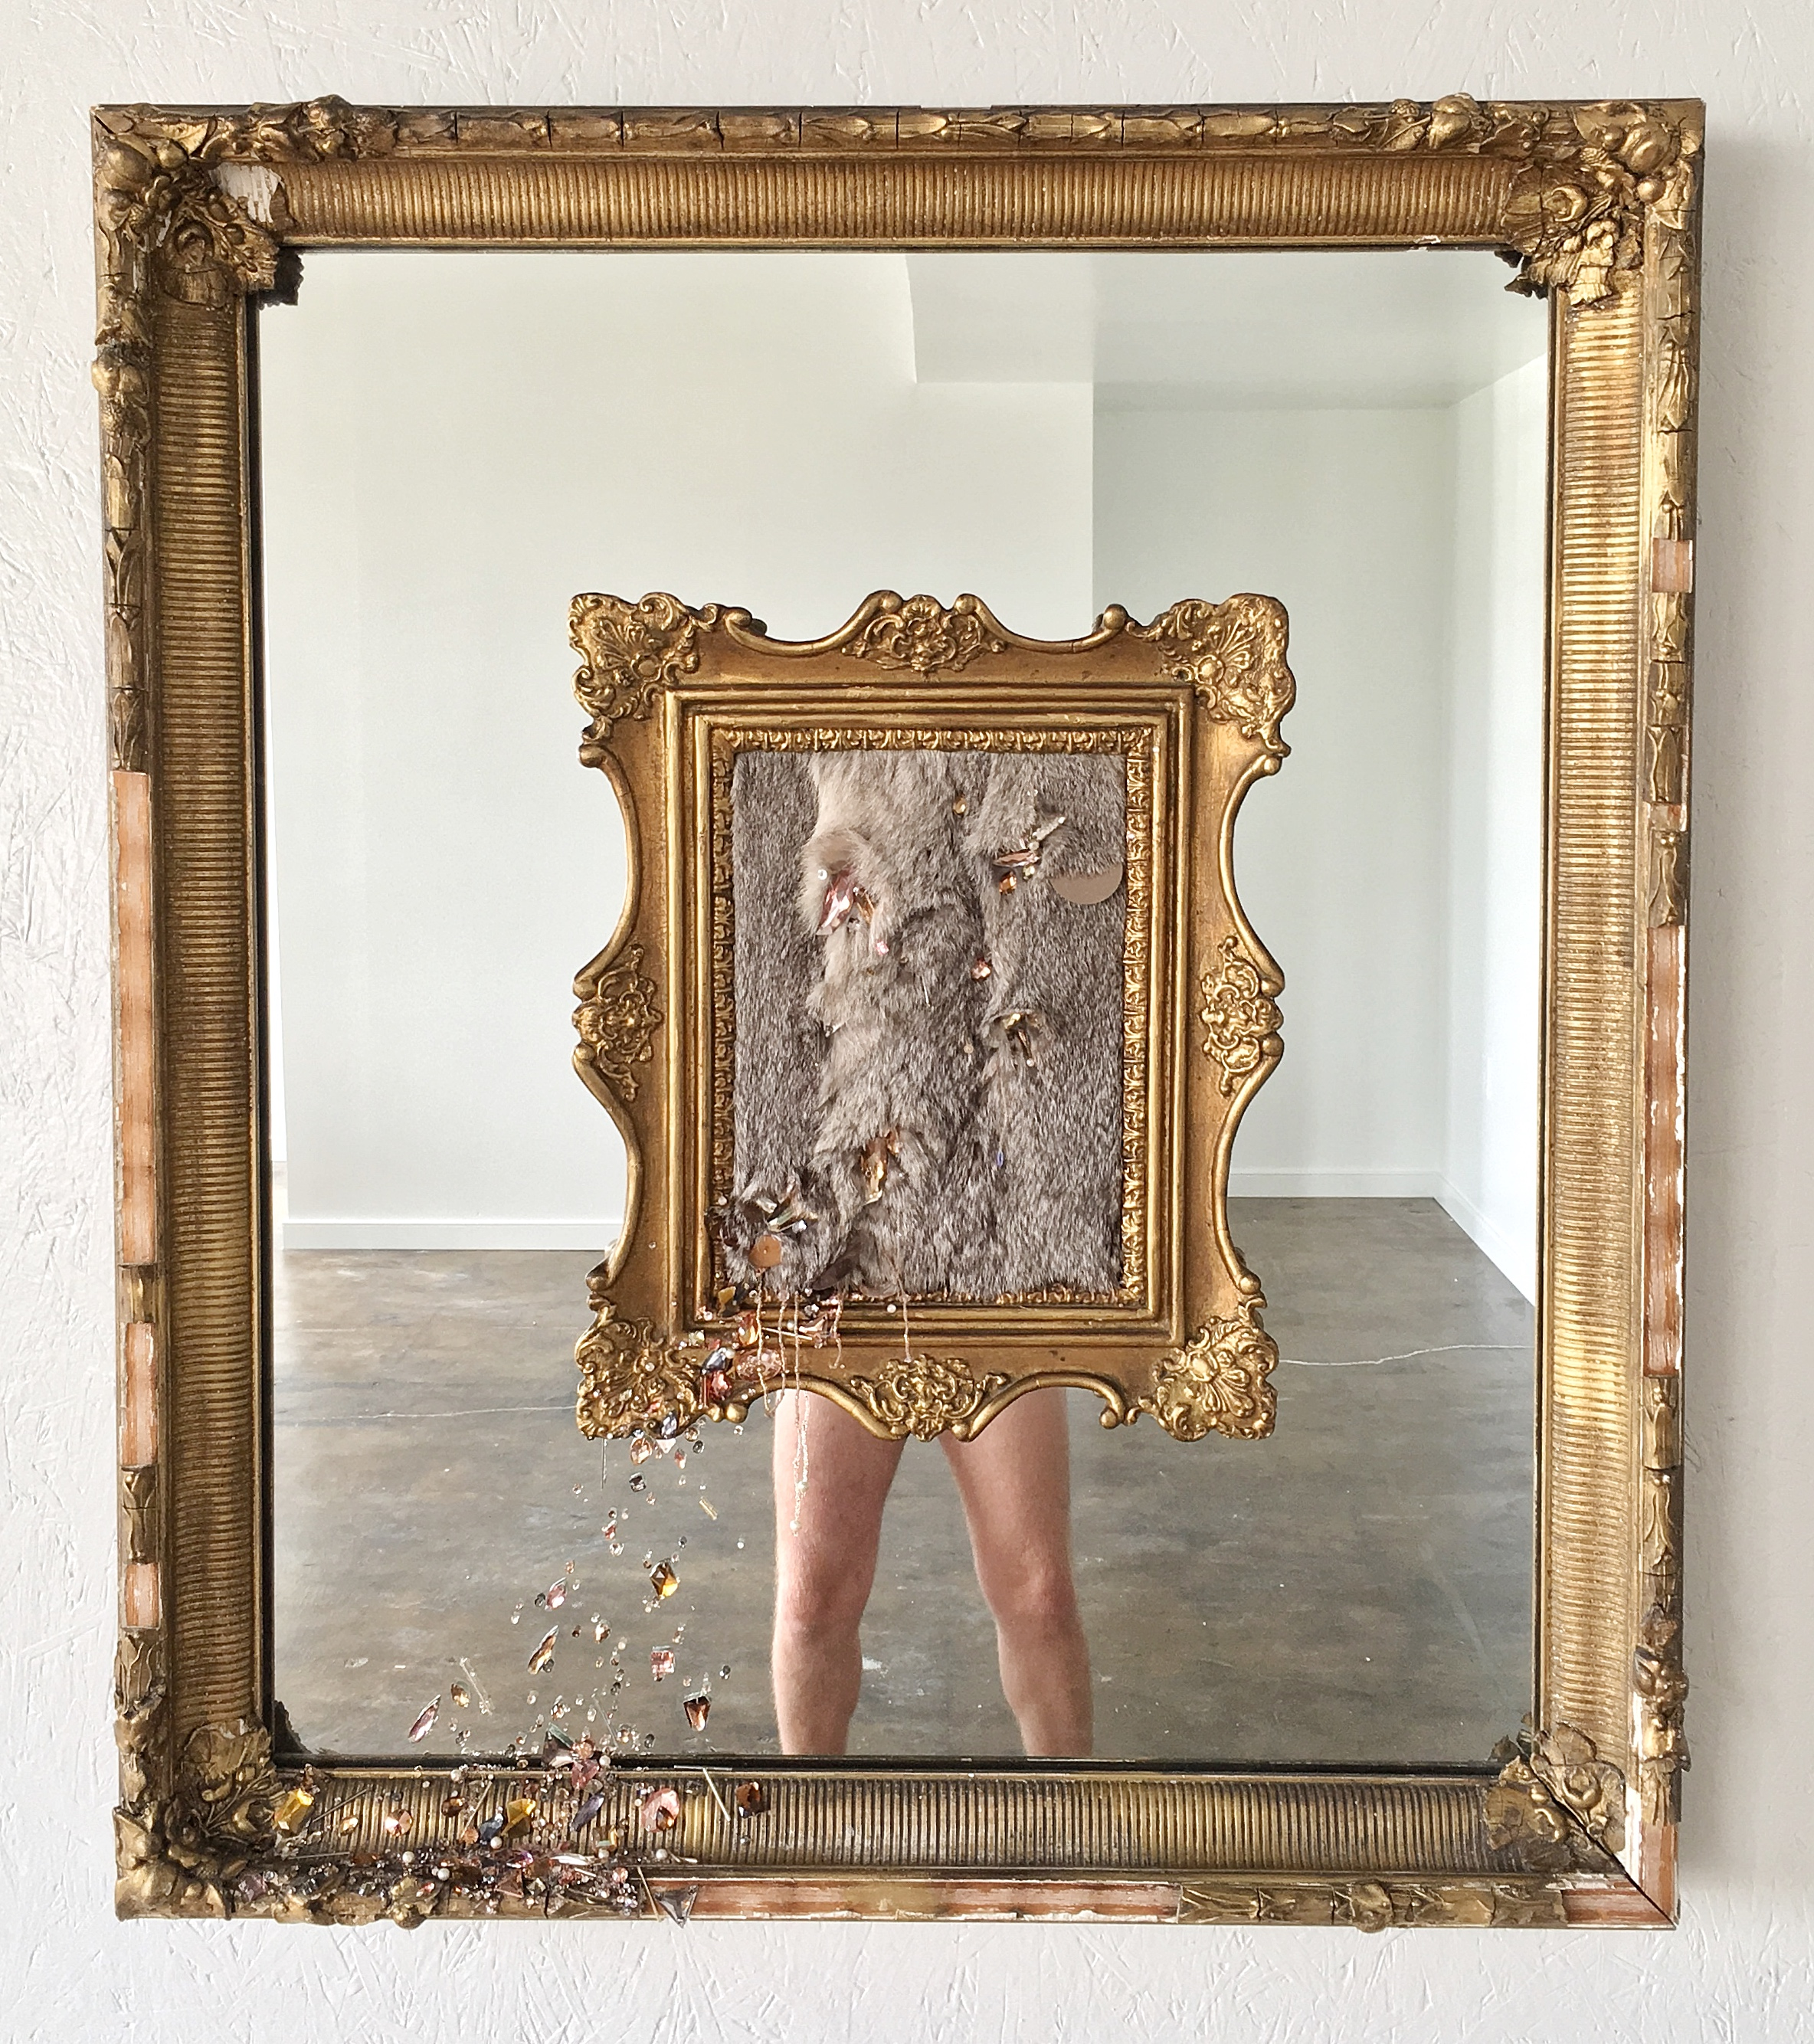 """Michael-Birch Pierce,  Where Do I Stop and You Begin?,  2017.  Hand embellishment on rabbit fur with antique frames and mirror. 34""""x39"""".  Image courtesy of the artist."""